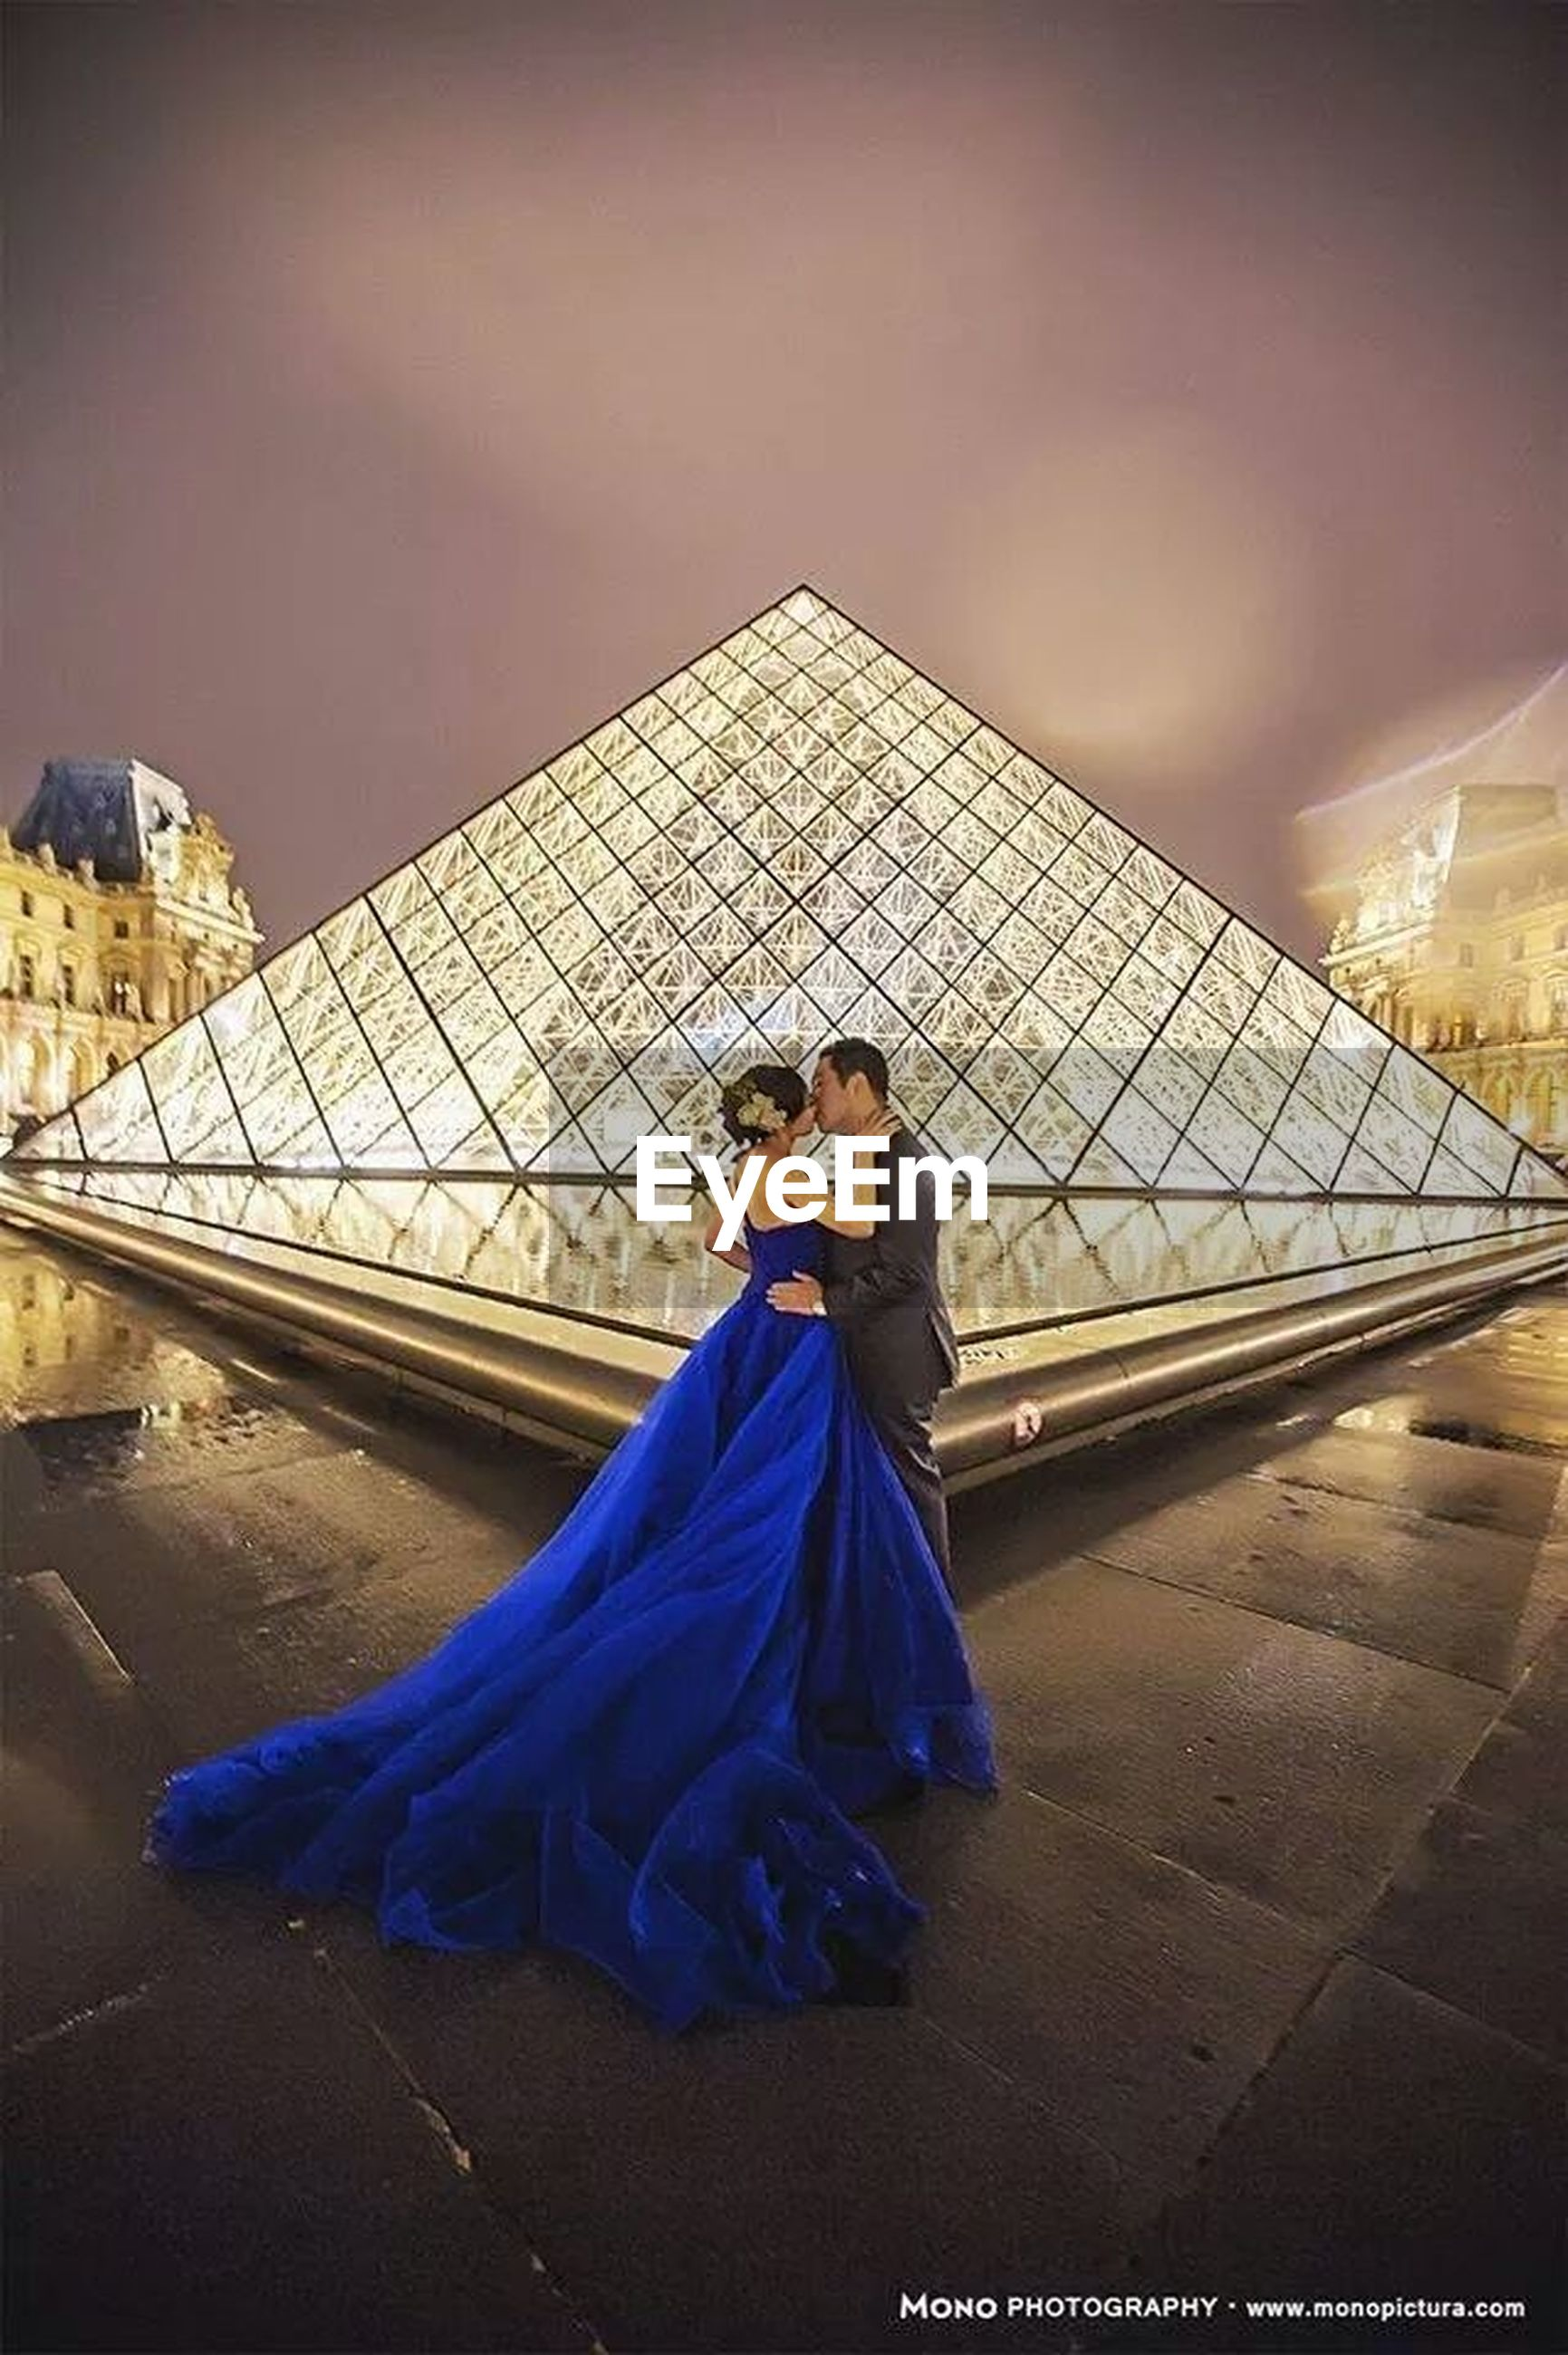 built structure, architecture, building exterior, lifestyles, leisure activity, casual clothing, arts culture and entertainment, standing, famous place, full length, rear view, young adult, travel, men, night, outdoors, city, waist up